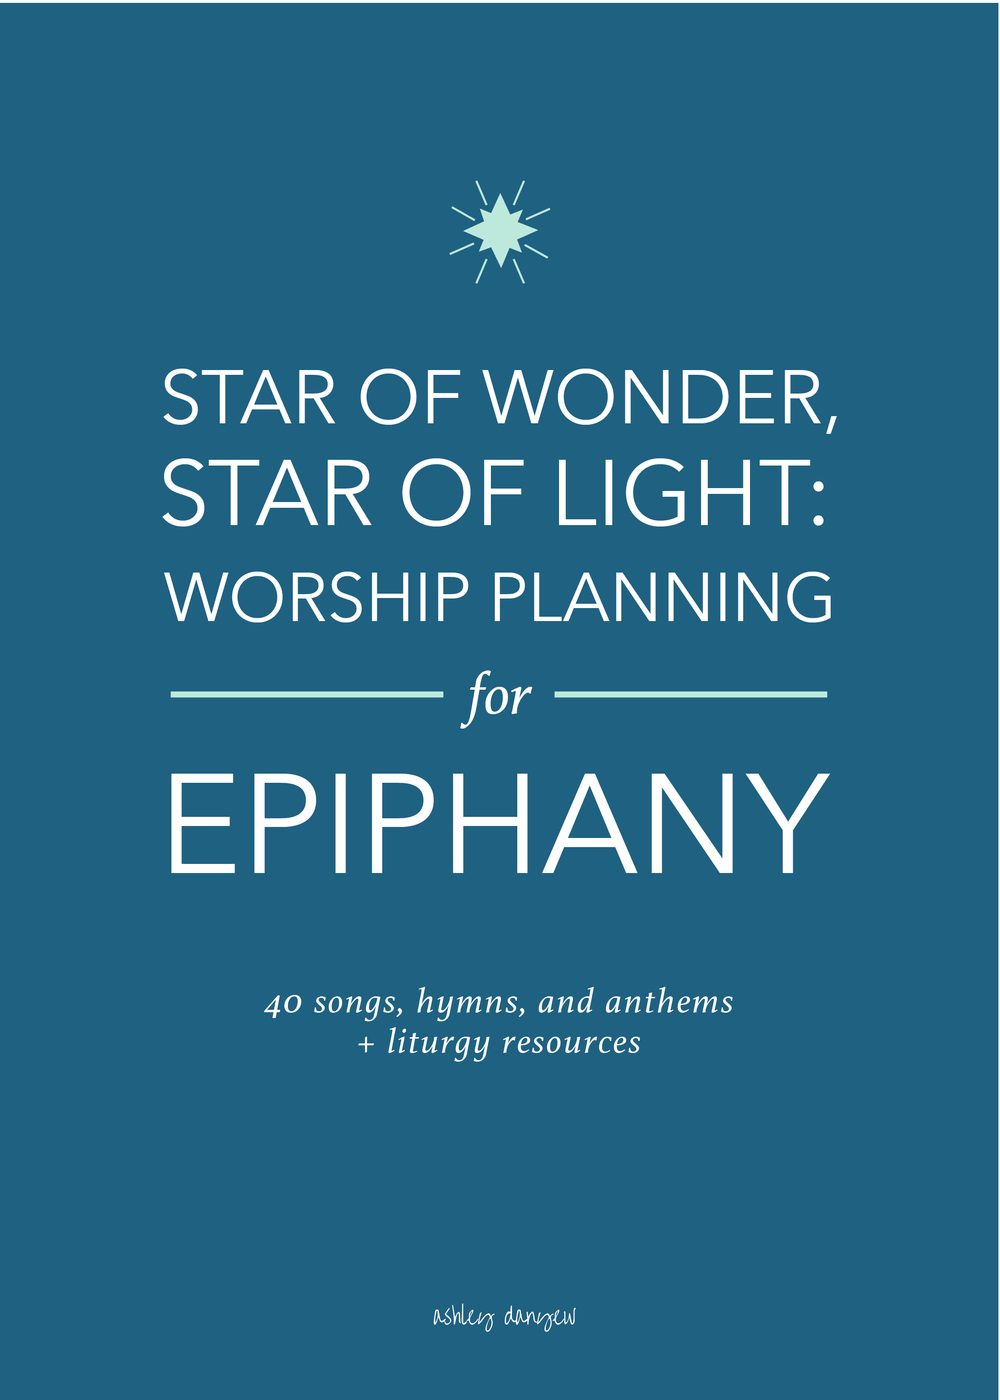 Star of Wonder, Star of Light - Worship Planning for Epiphany-69.png